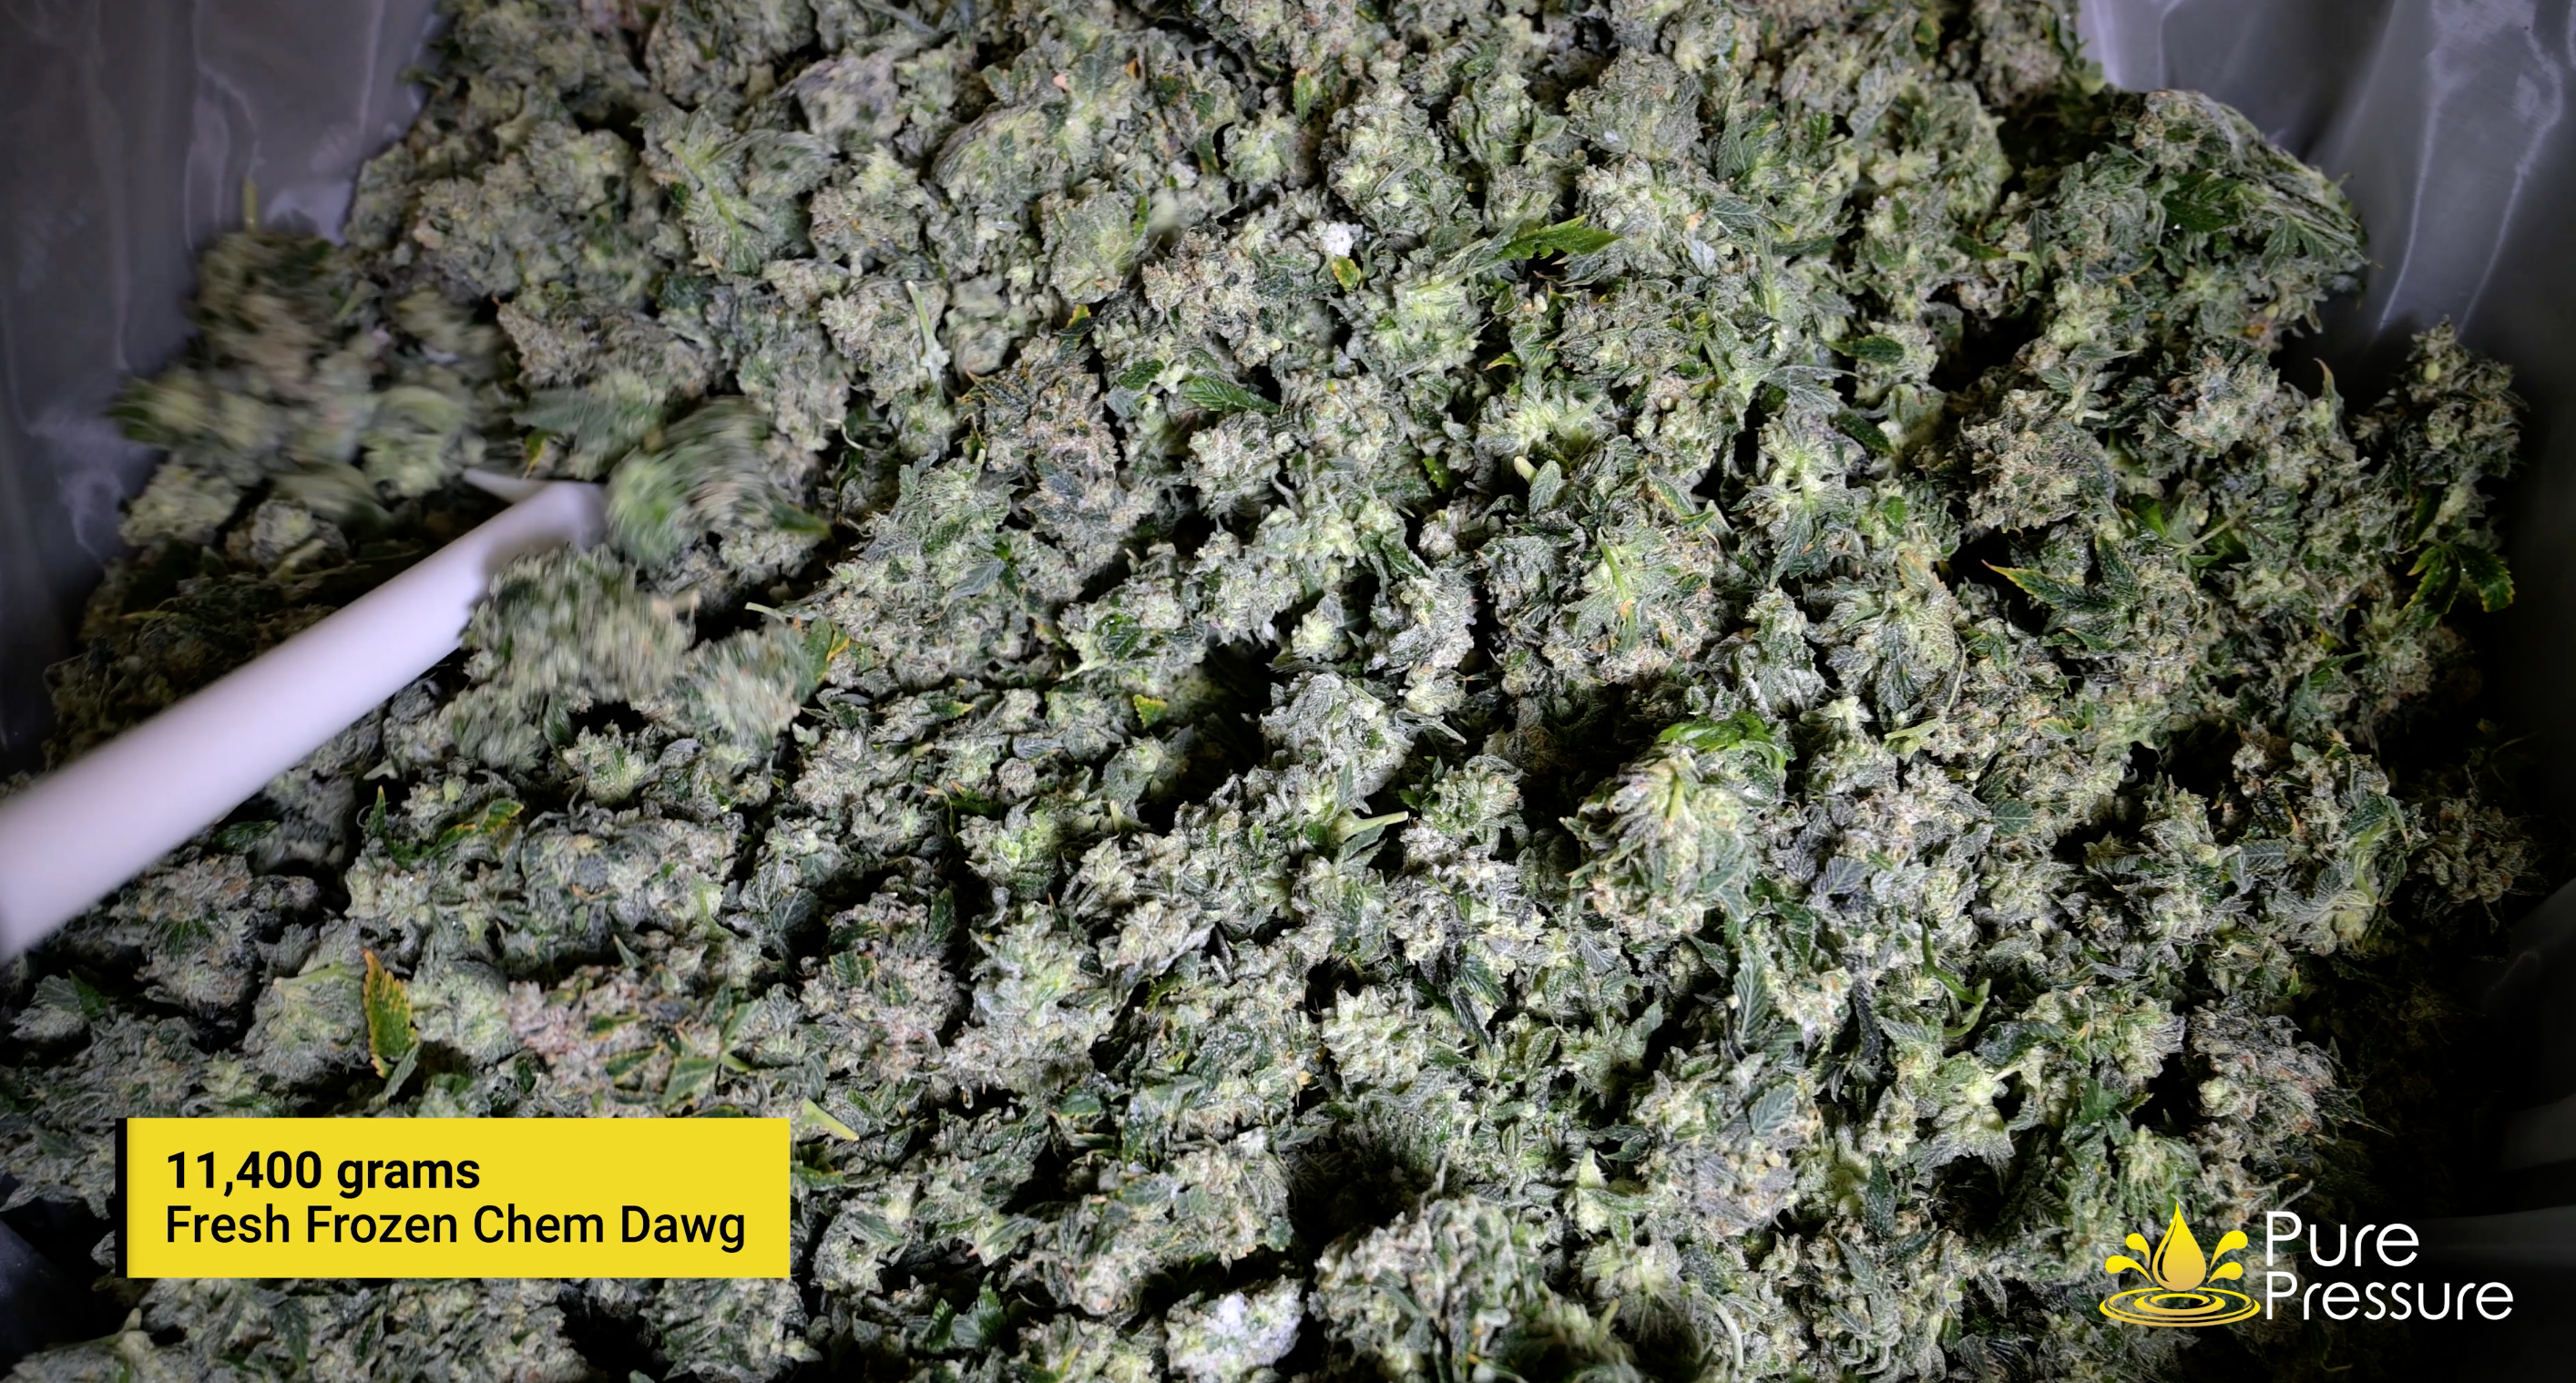 Pictured: 11,400 grams of fresh frozen chem dog from Kush Masters in Boulder, CO.